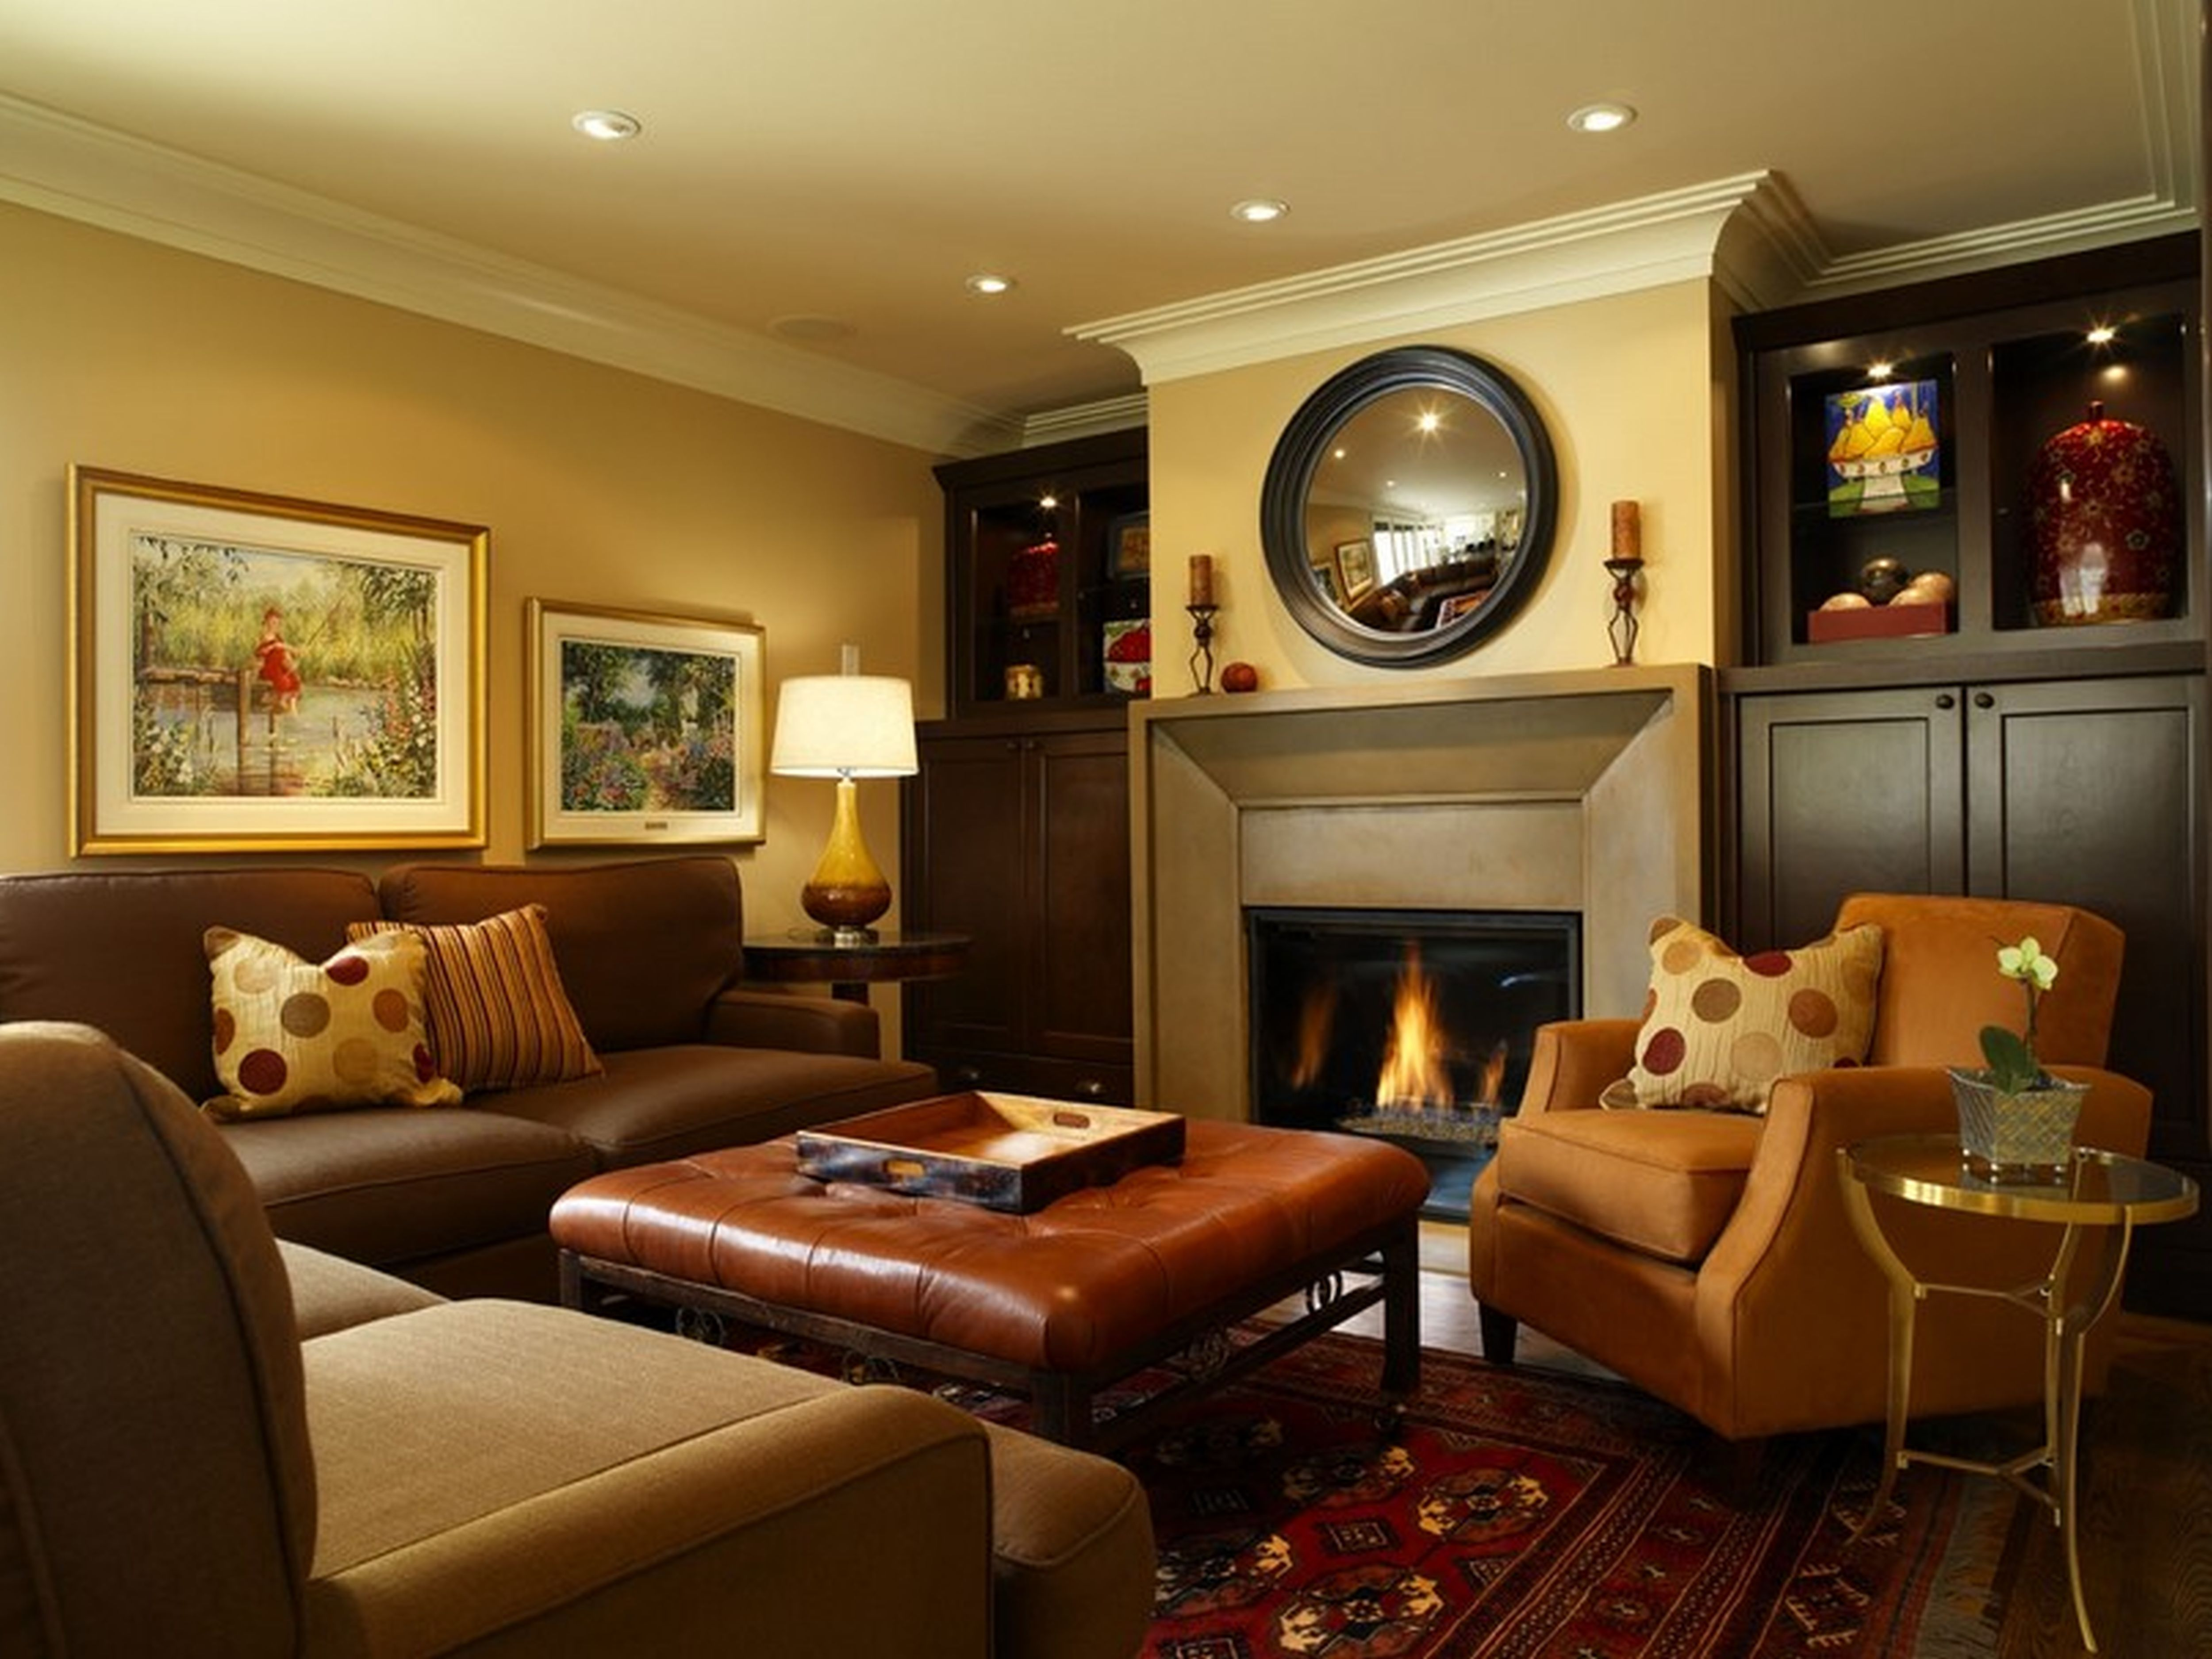 Basement Family Room Design Ideas 30 Best Basement Family Room Images On Pinterest  Basement Family